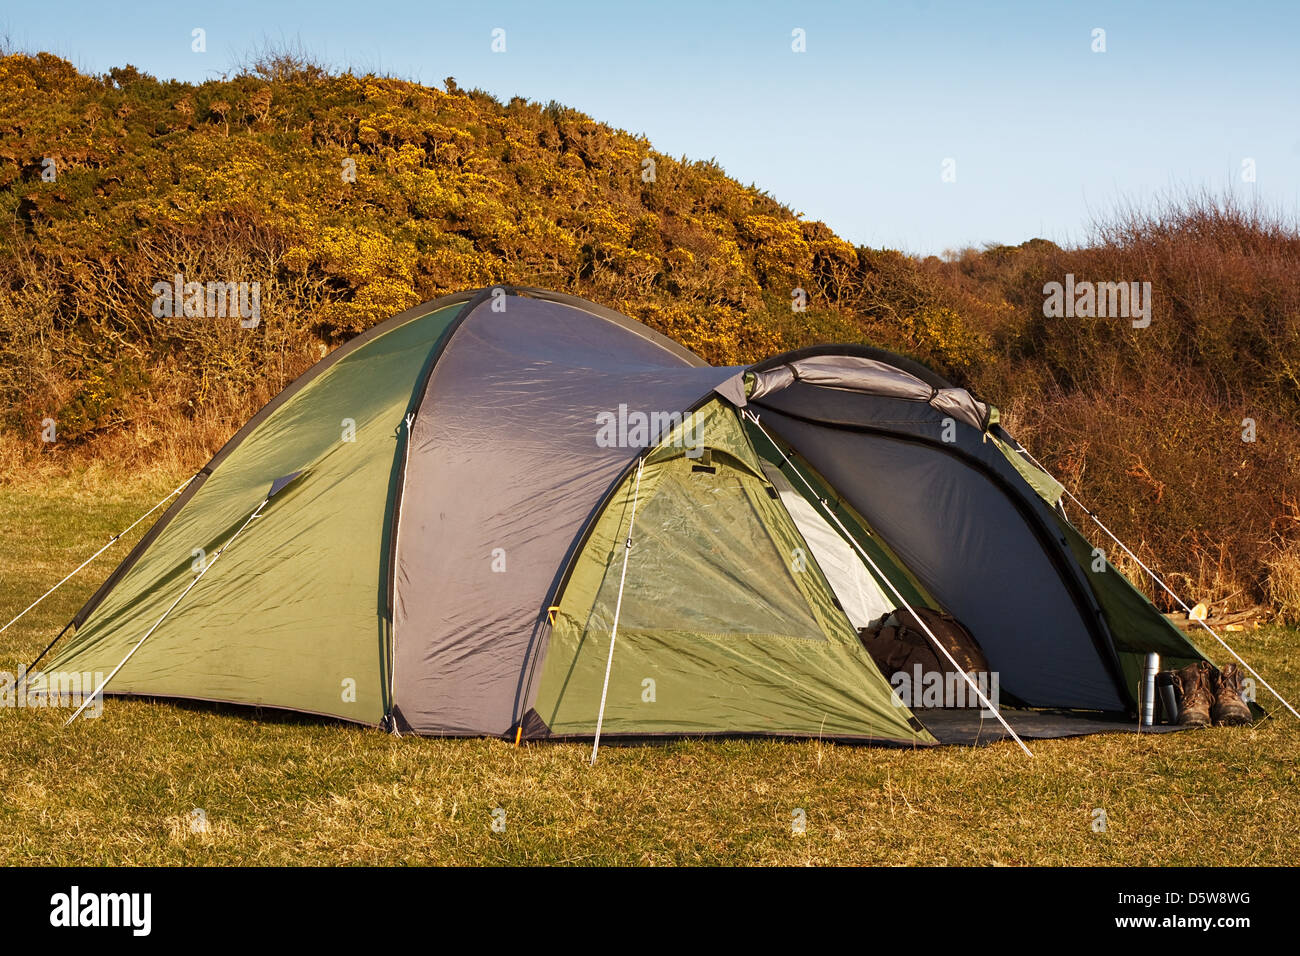 dome tent pitched in field for wild camping in the great outdoors with front flap open showing interior - Stock Image